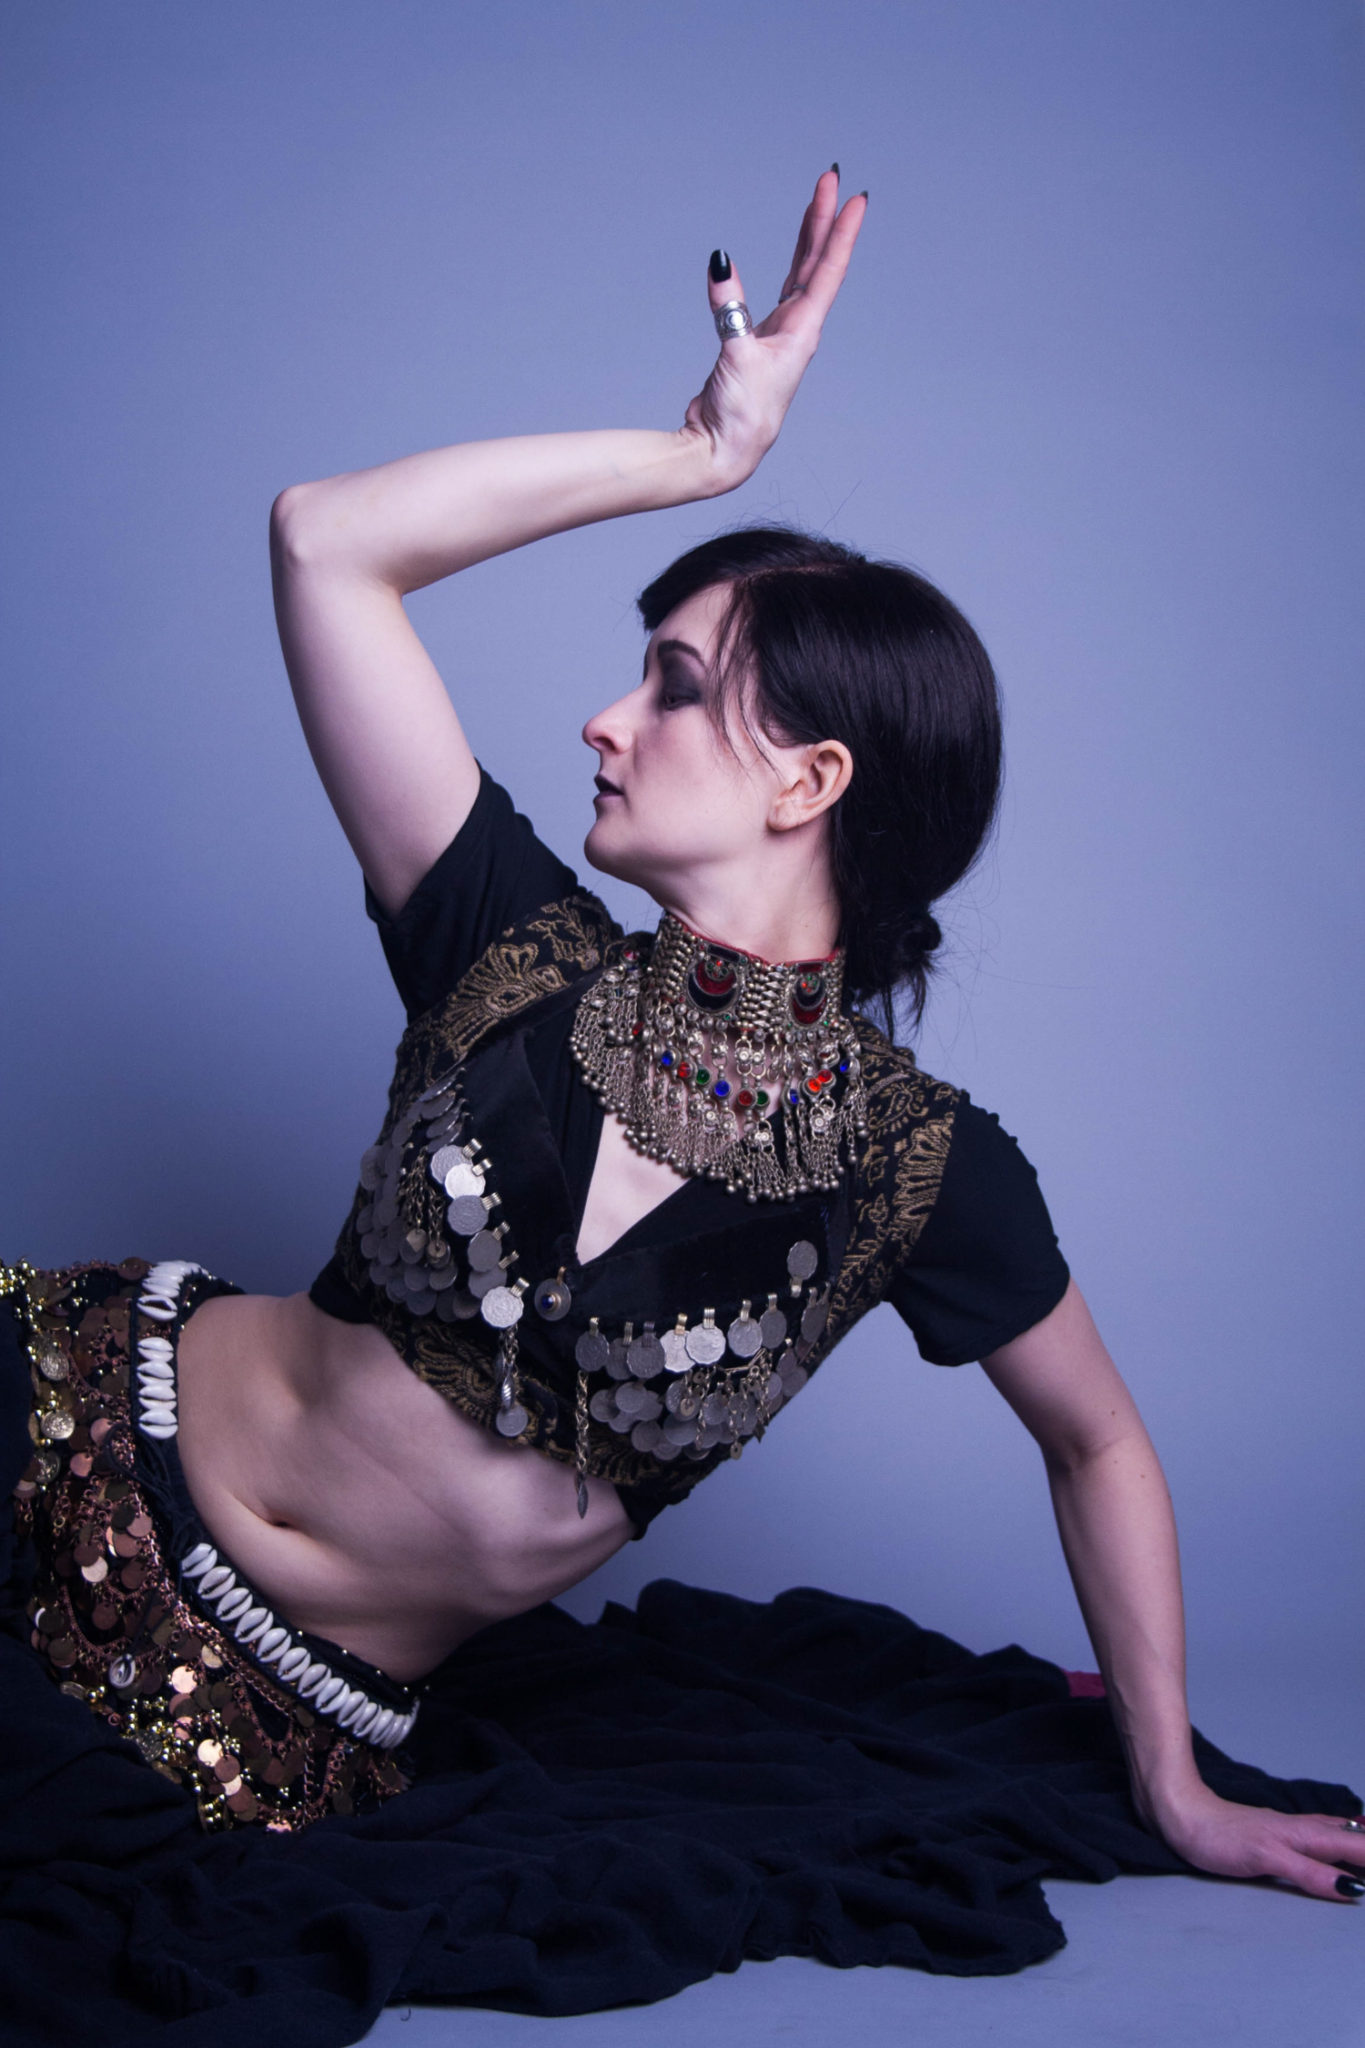 Belly dancer portrait